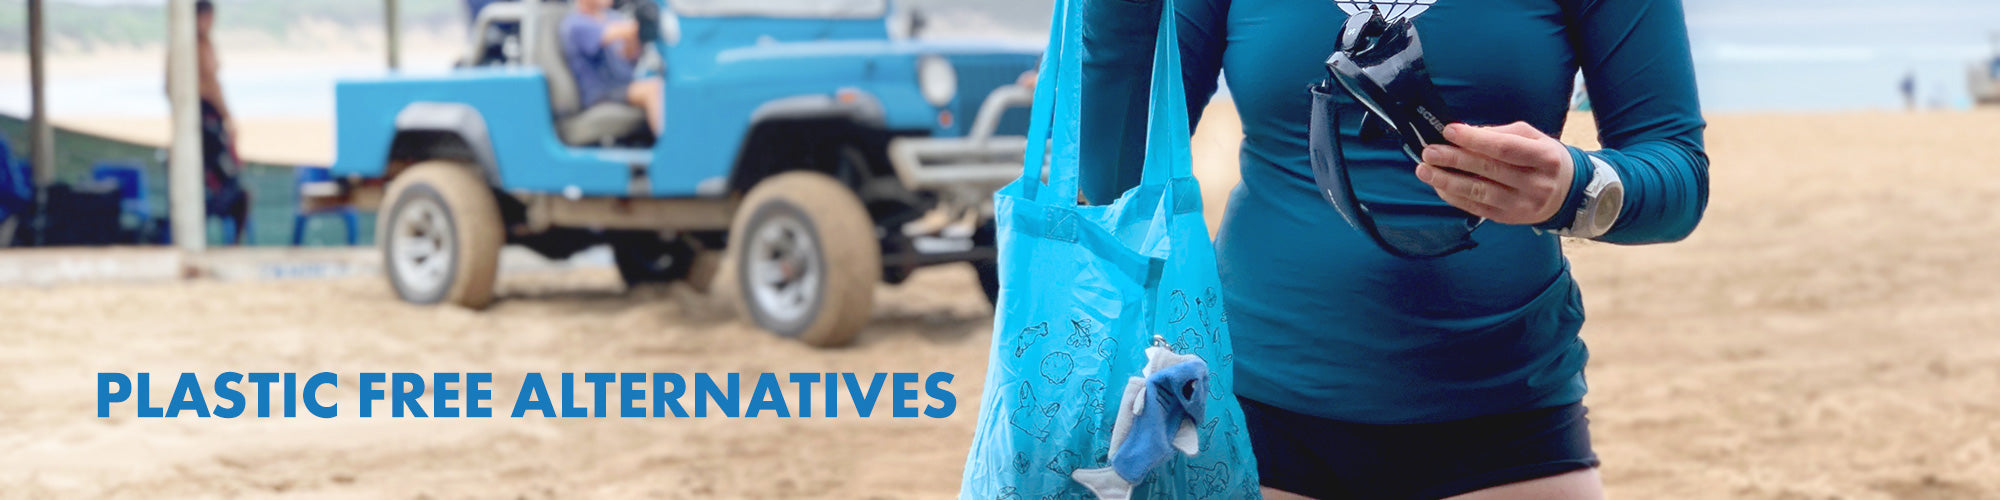 Plastic free alternatives collection page.